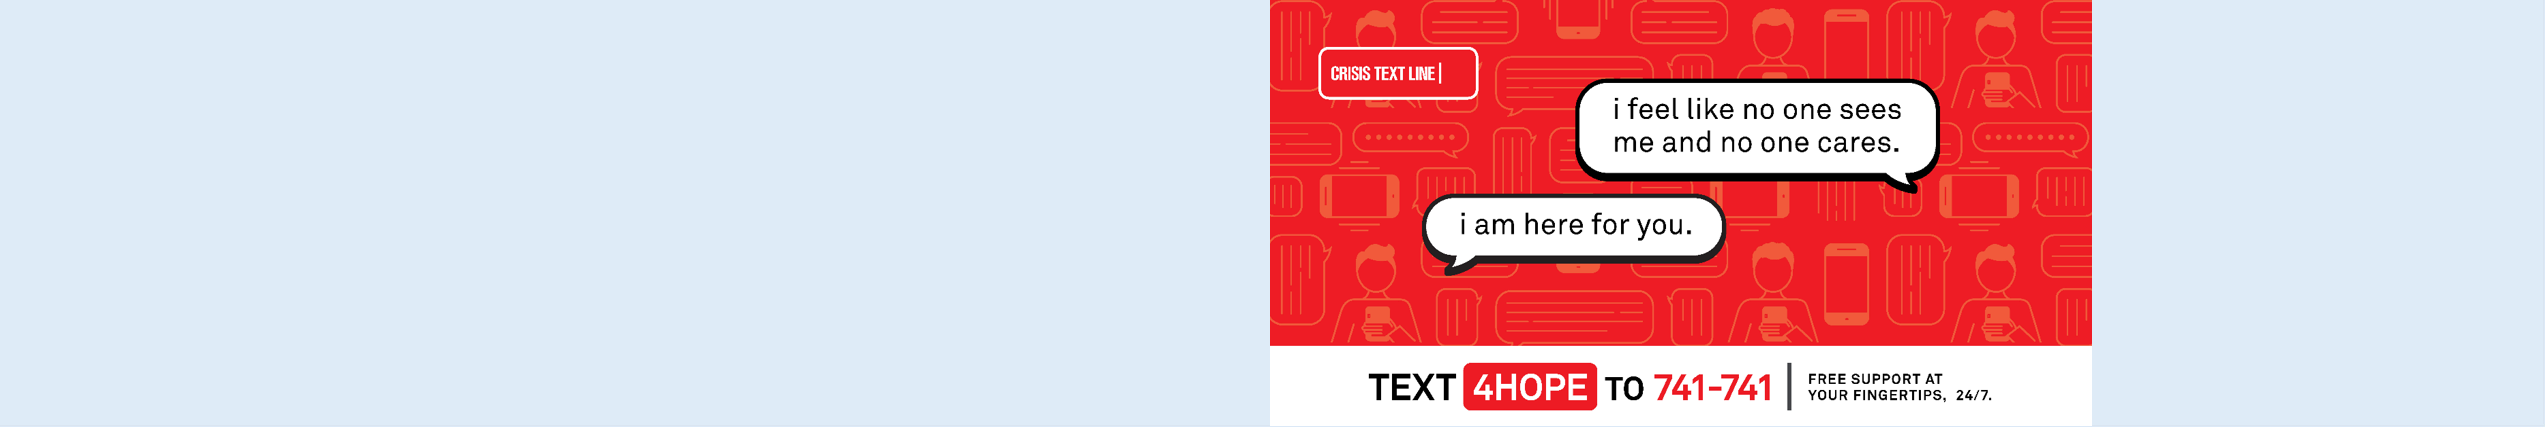 Generic images of people texting on their phones